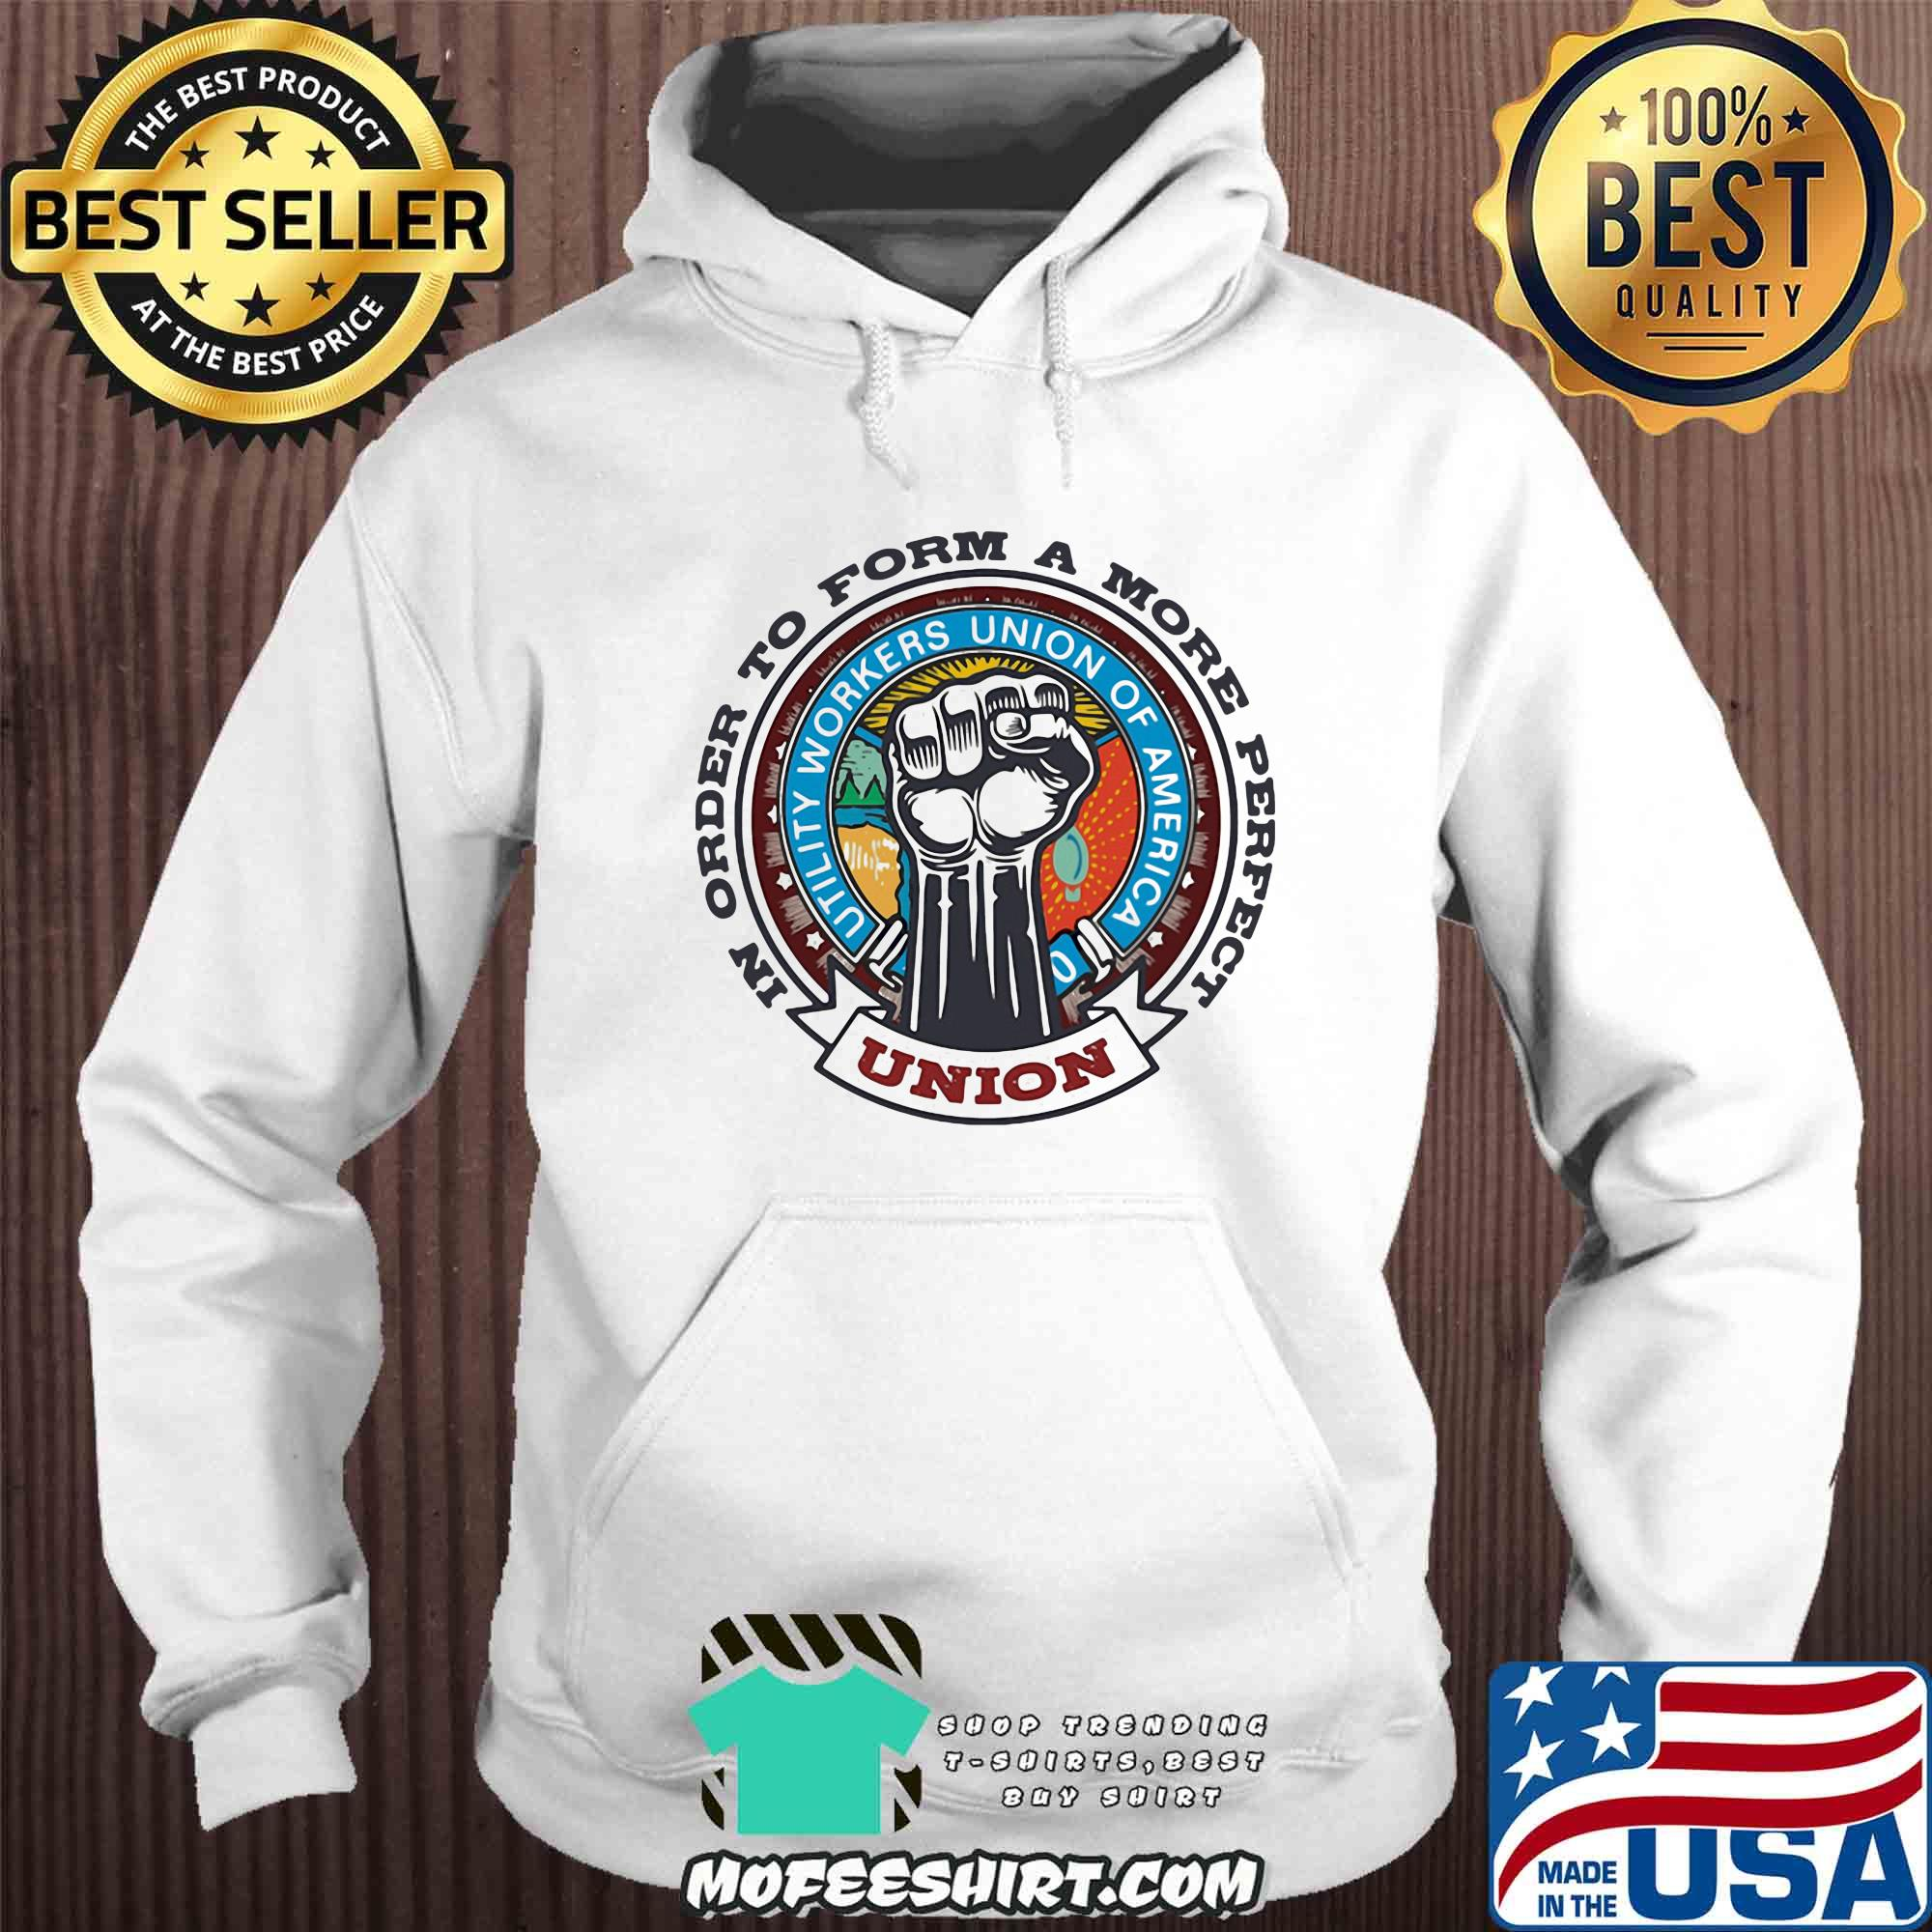 Sale 20 Official Utility Workers Union Of America In